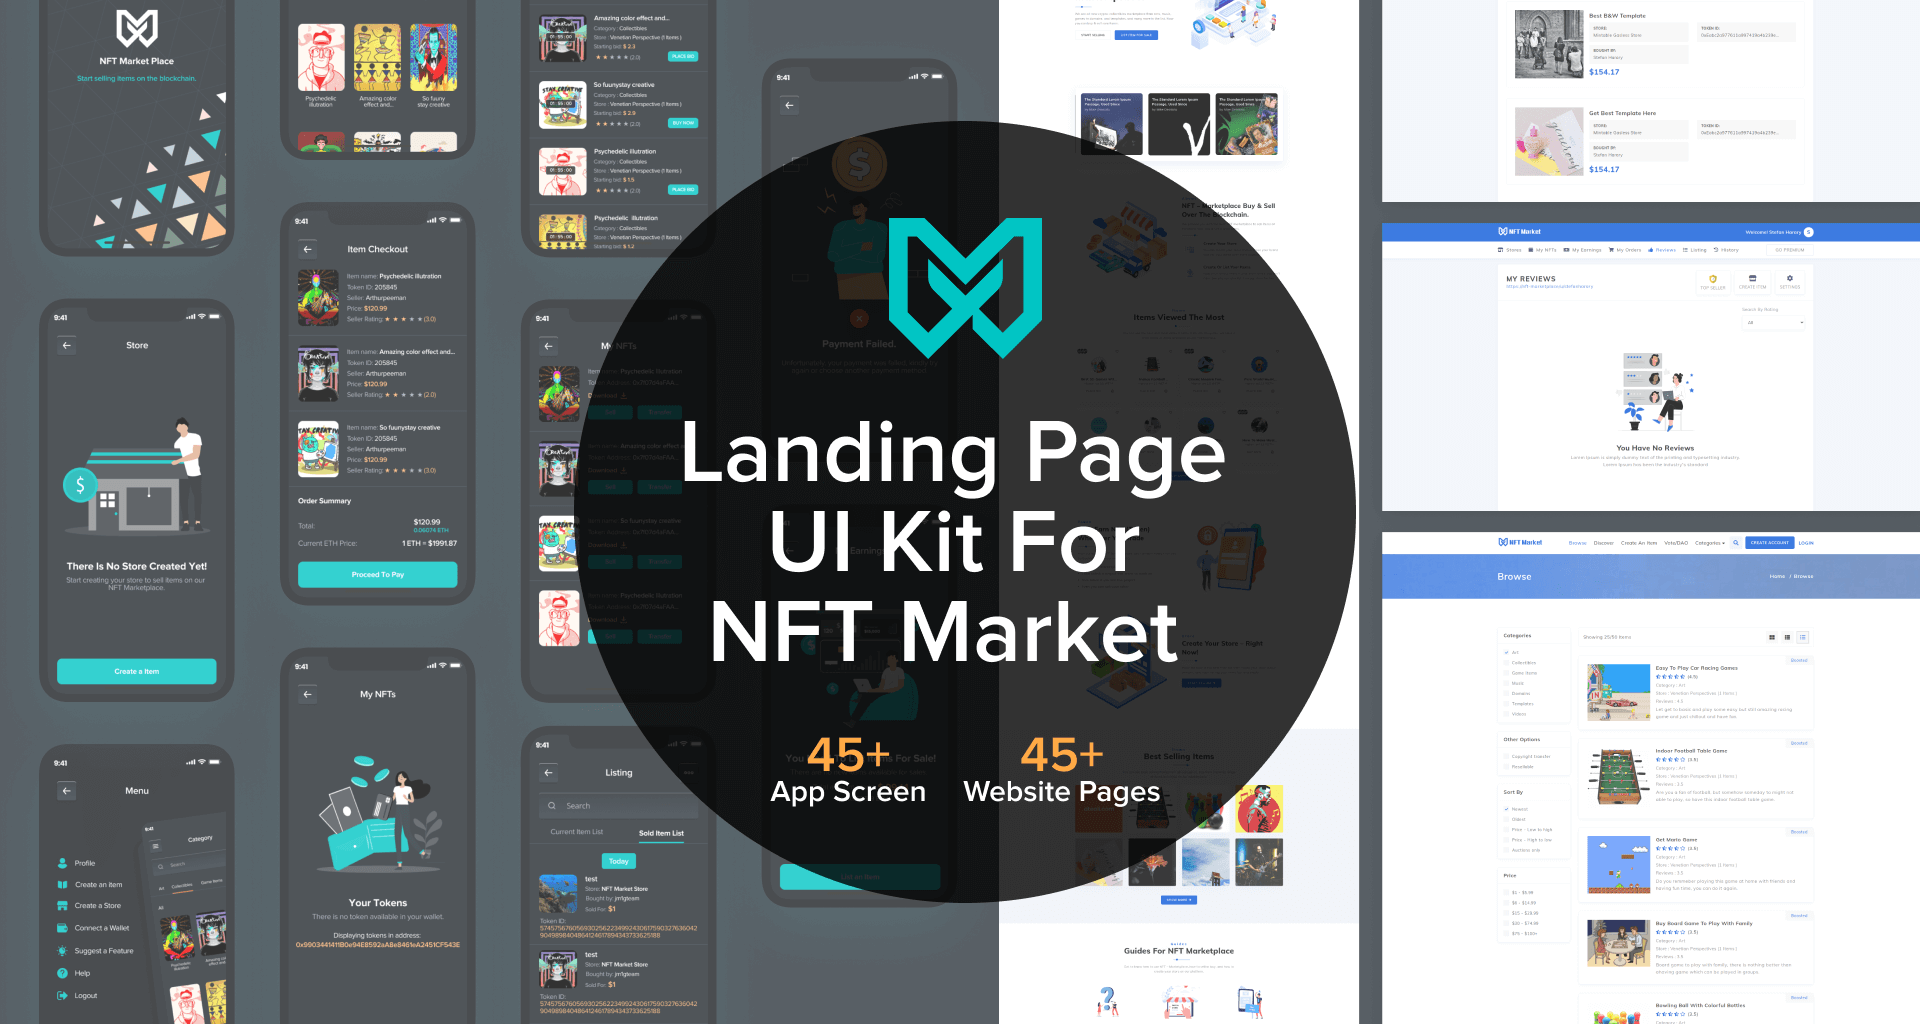 NFT Marketplace Template Our Screen Images